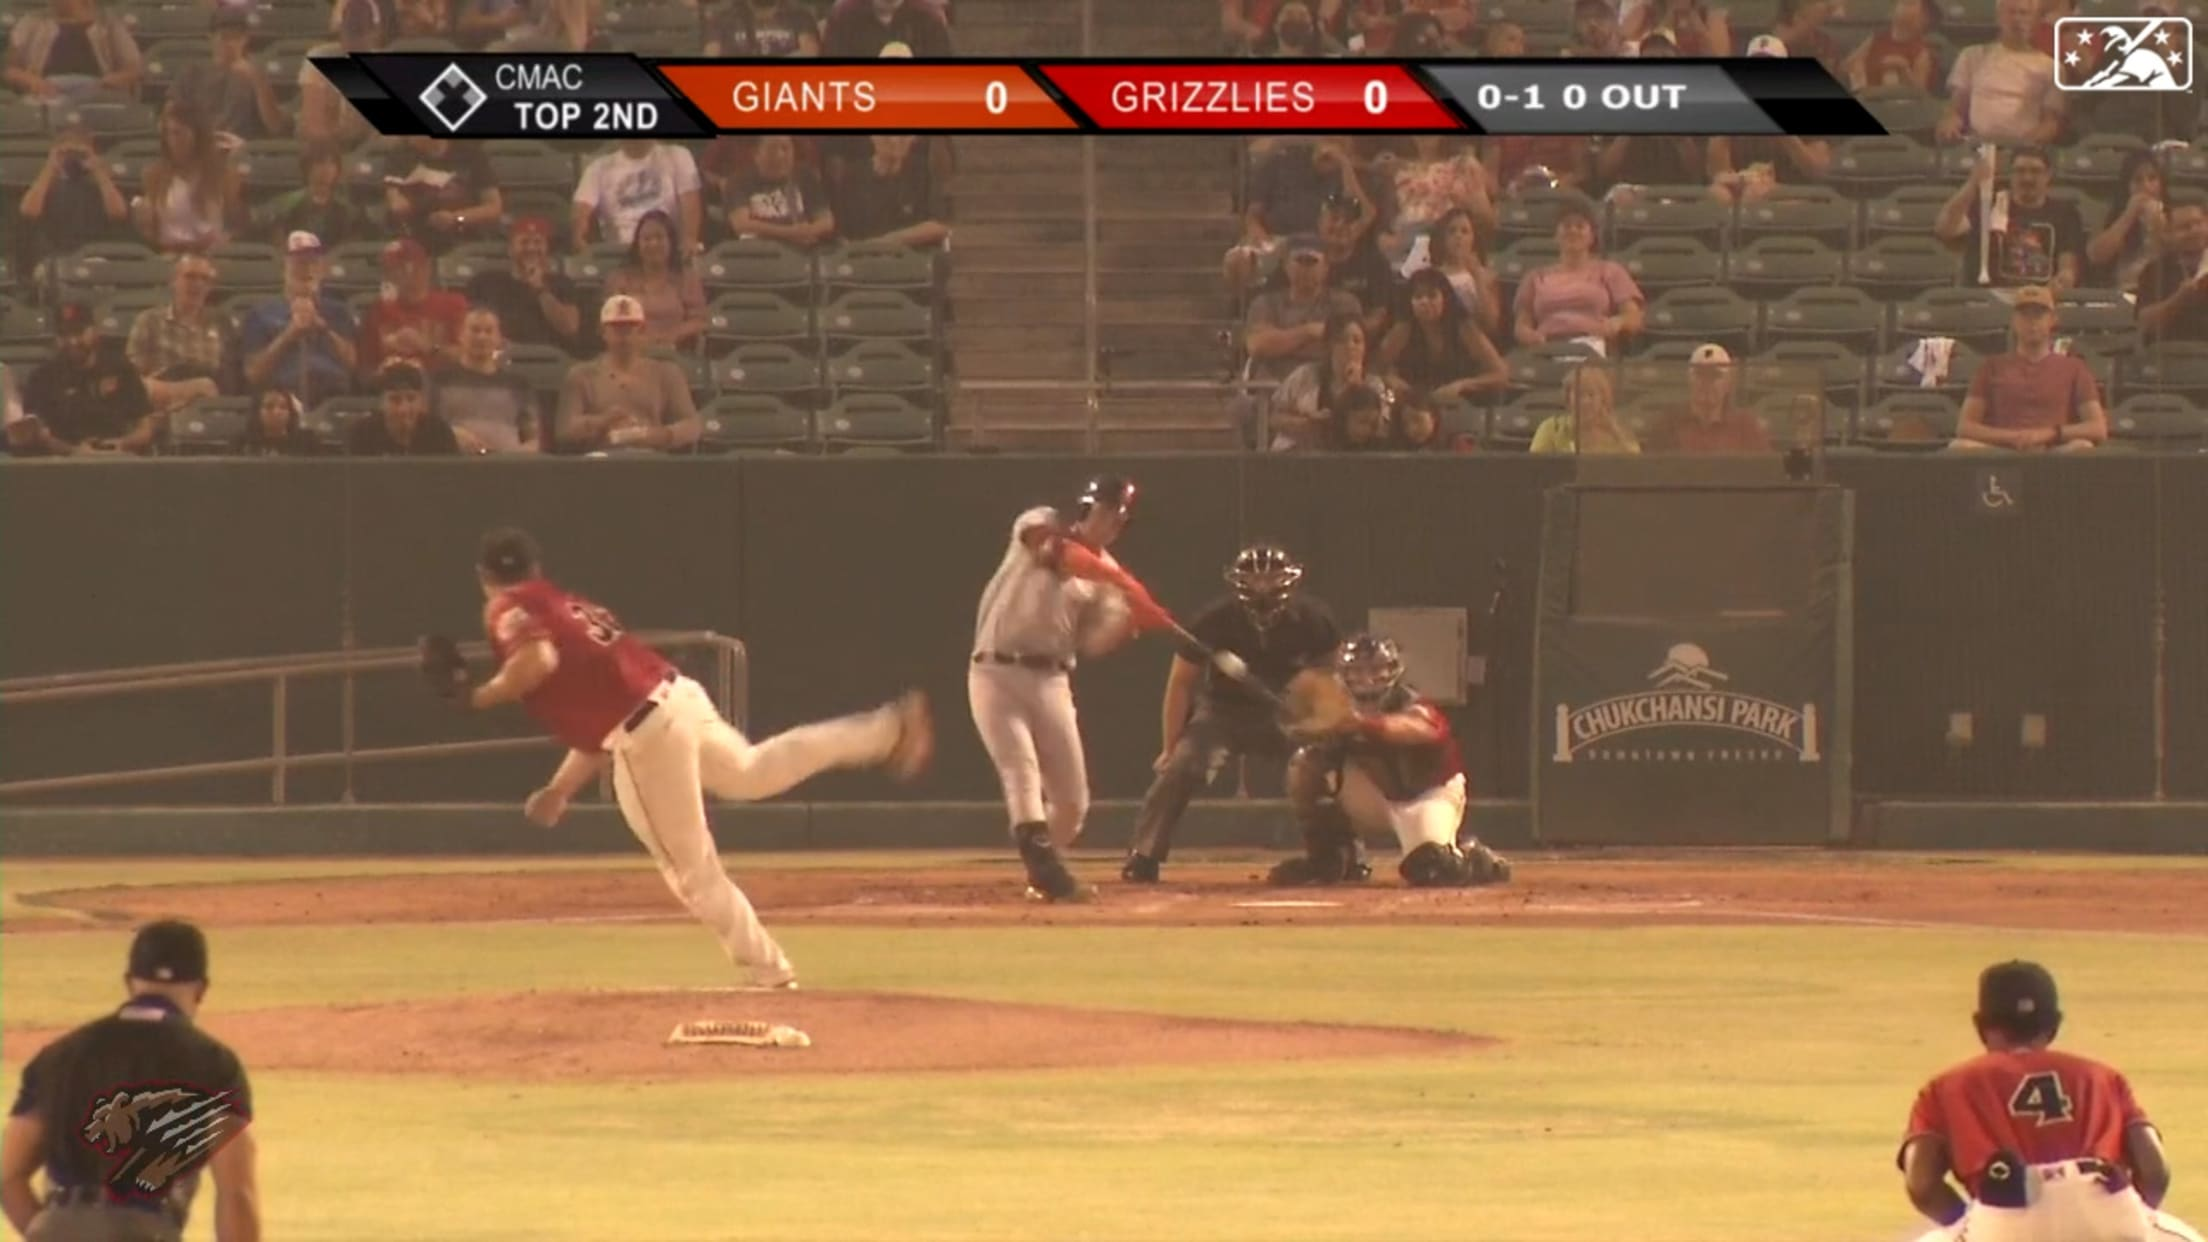 Bailey hits two HR's for San Jose